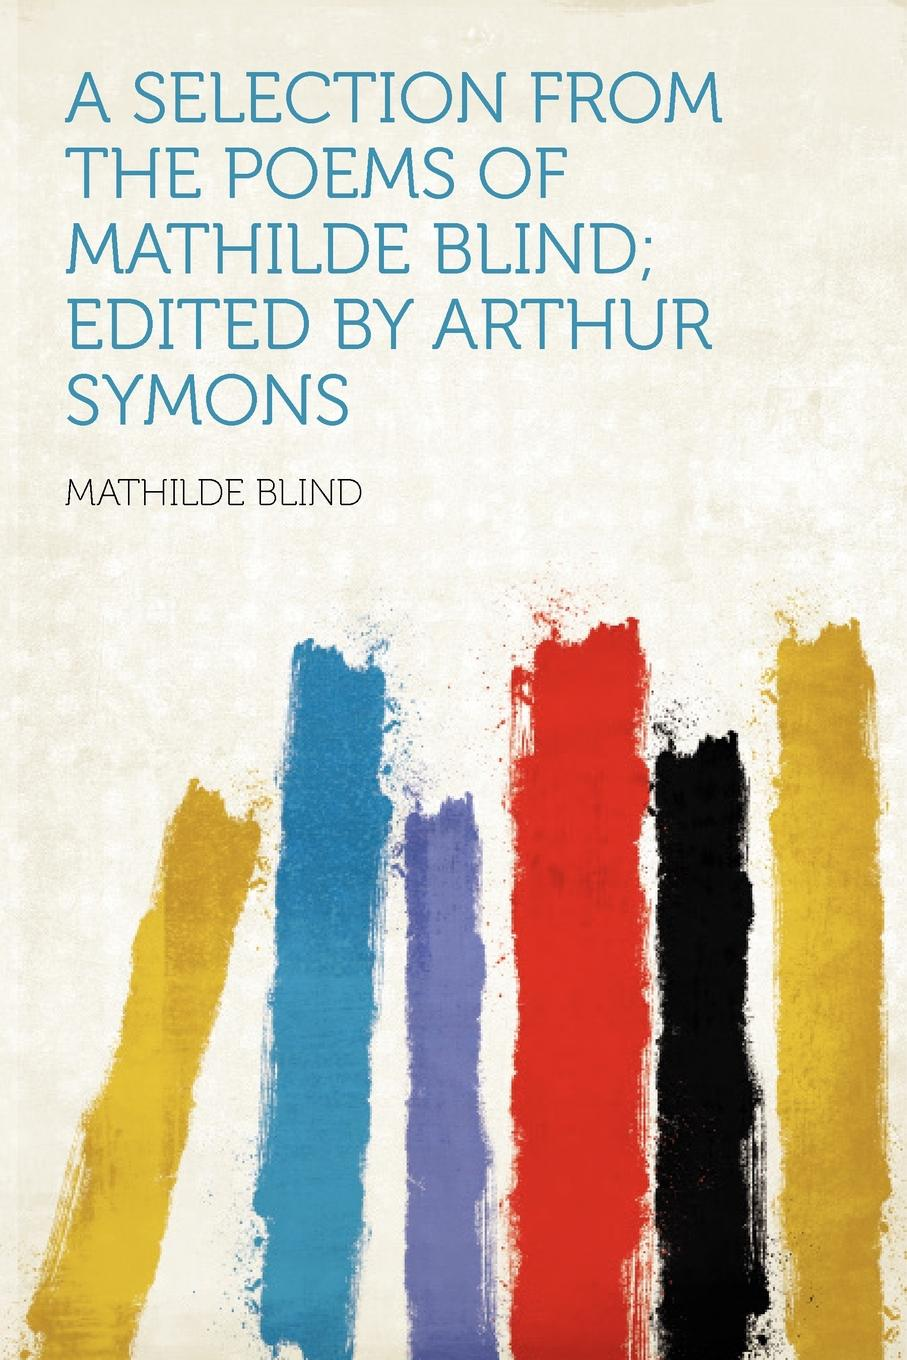 Mathilde Blind A Selection From the Poems of Mathilde Blind; Edited by Arthur Symons blind mathilde george eliot